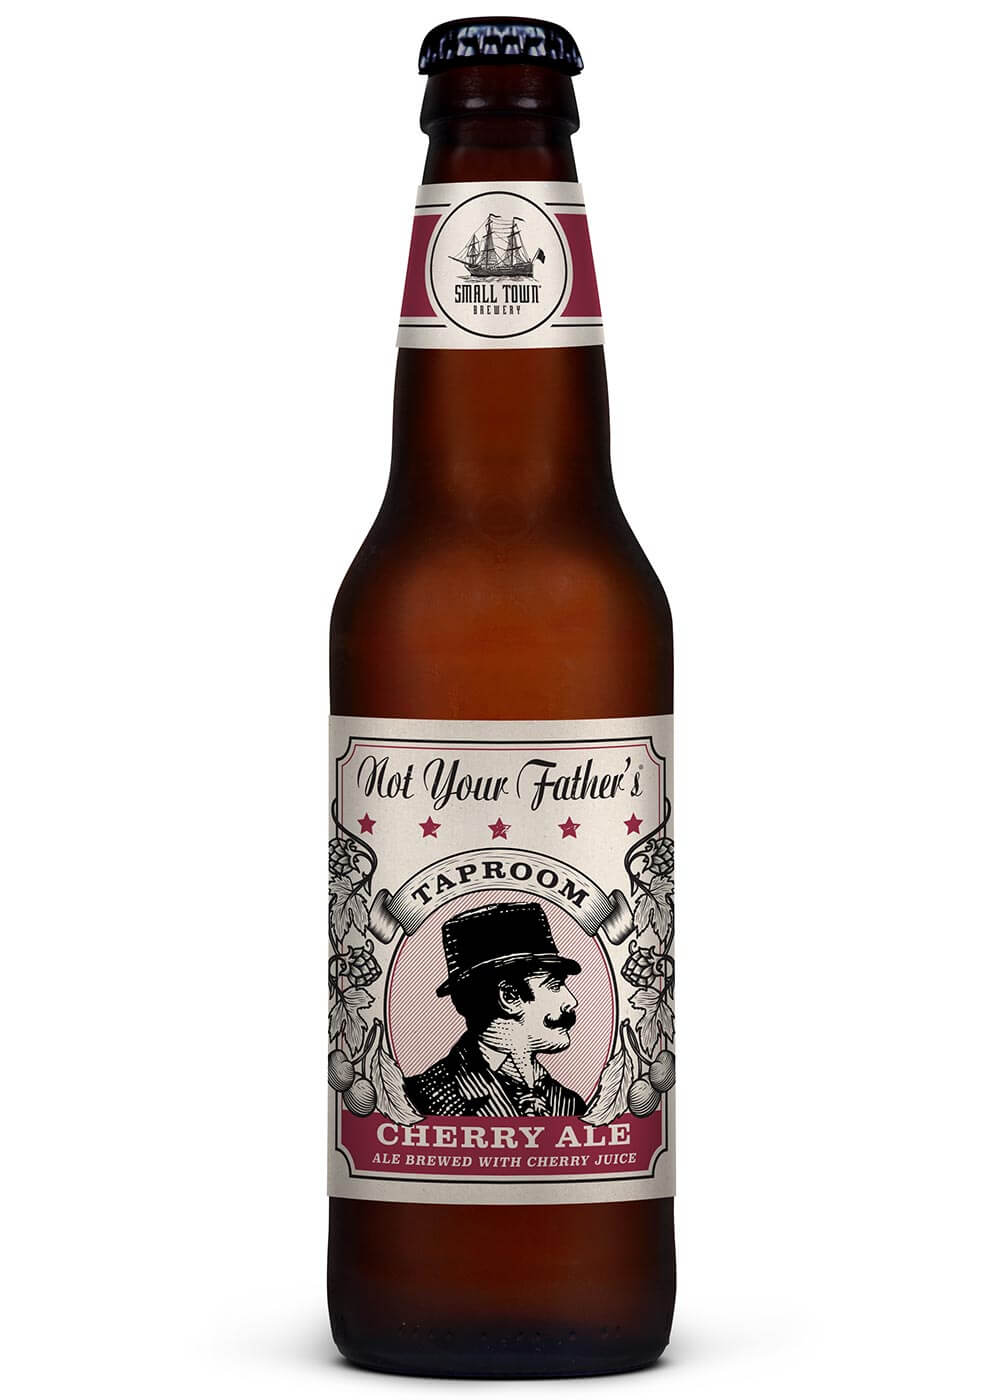 Taproom Cherry Ale